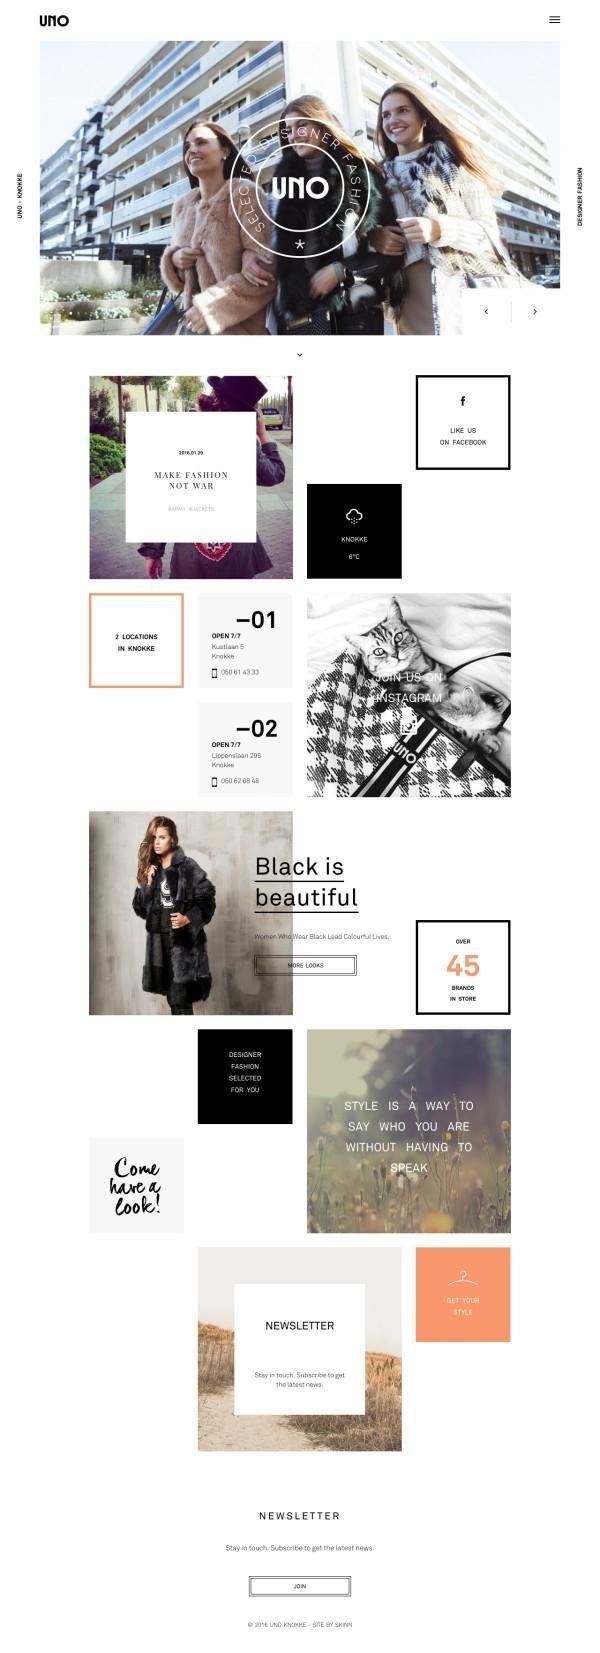 Screenshot http://www.unoknokke.be/ - created via https://pinthemall.net